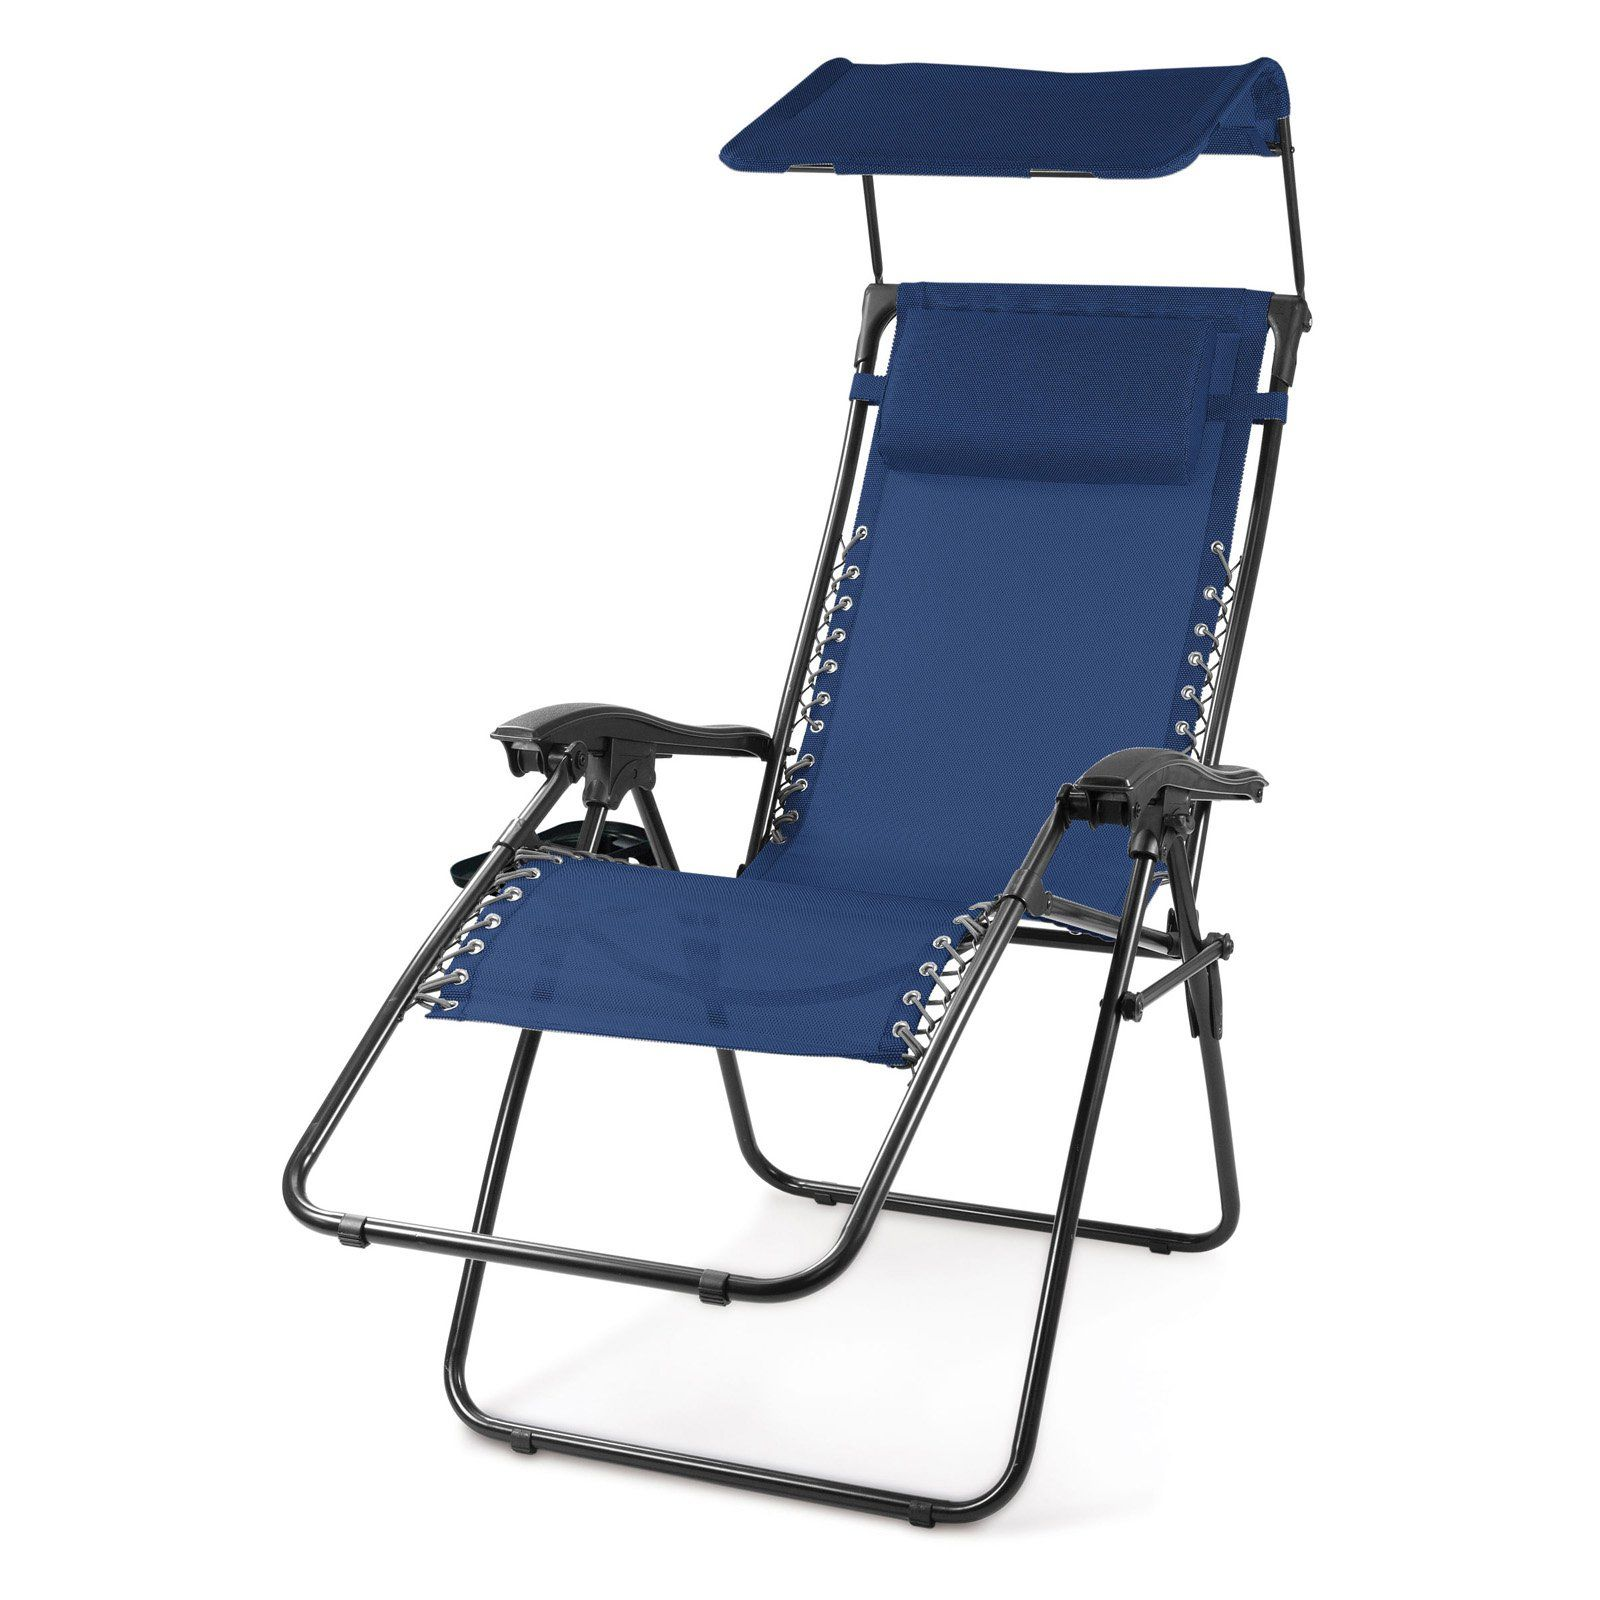 Outdoor Oniva Serenity Reclining Lawn Chair with Sunshade